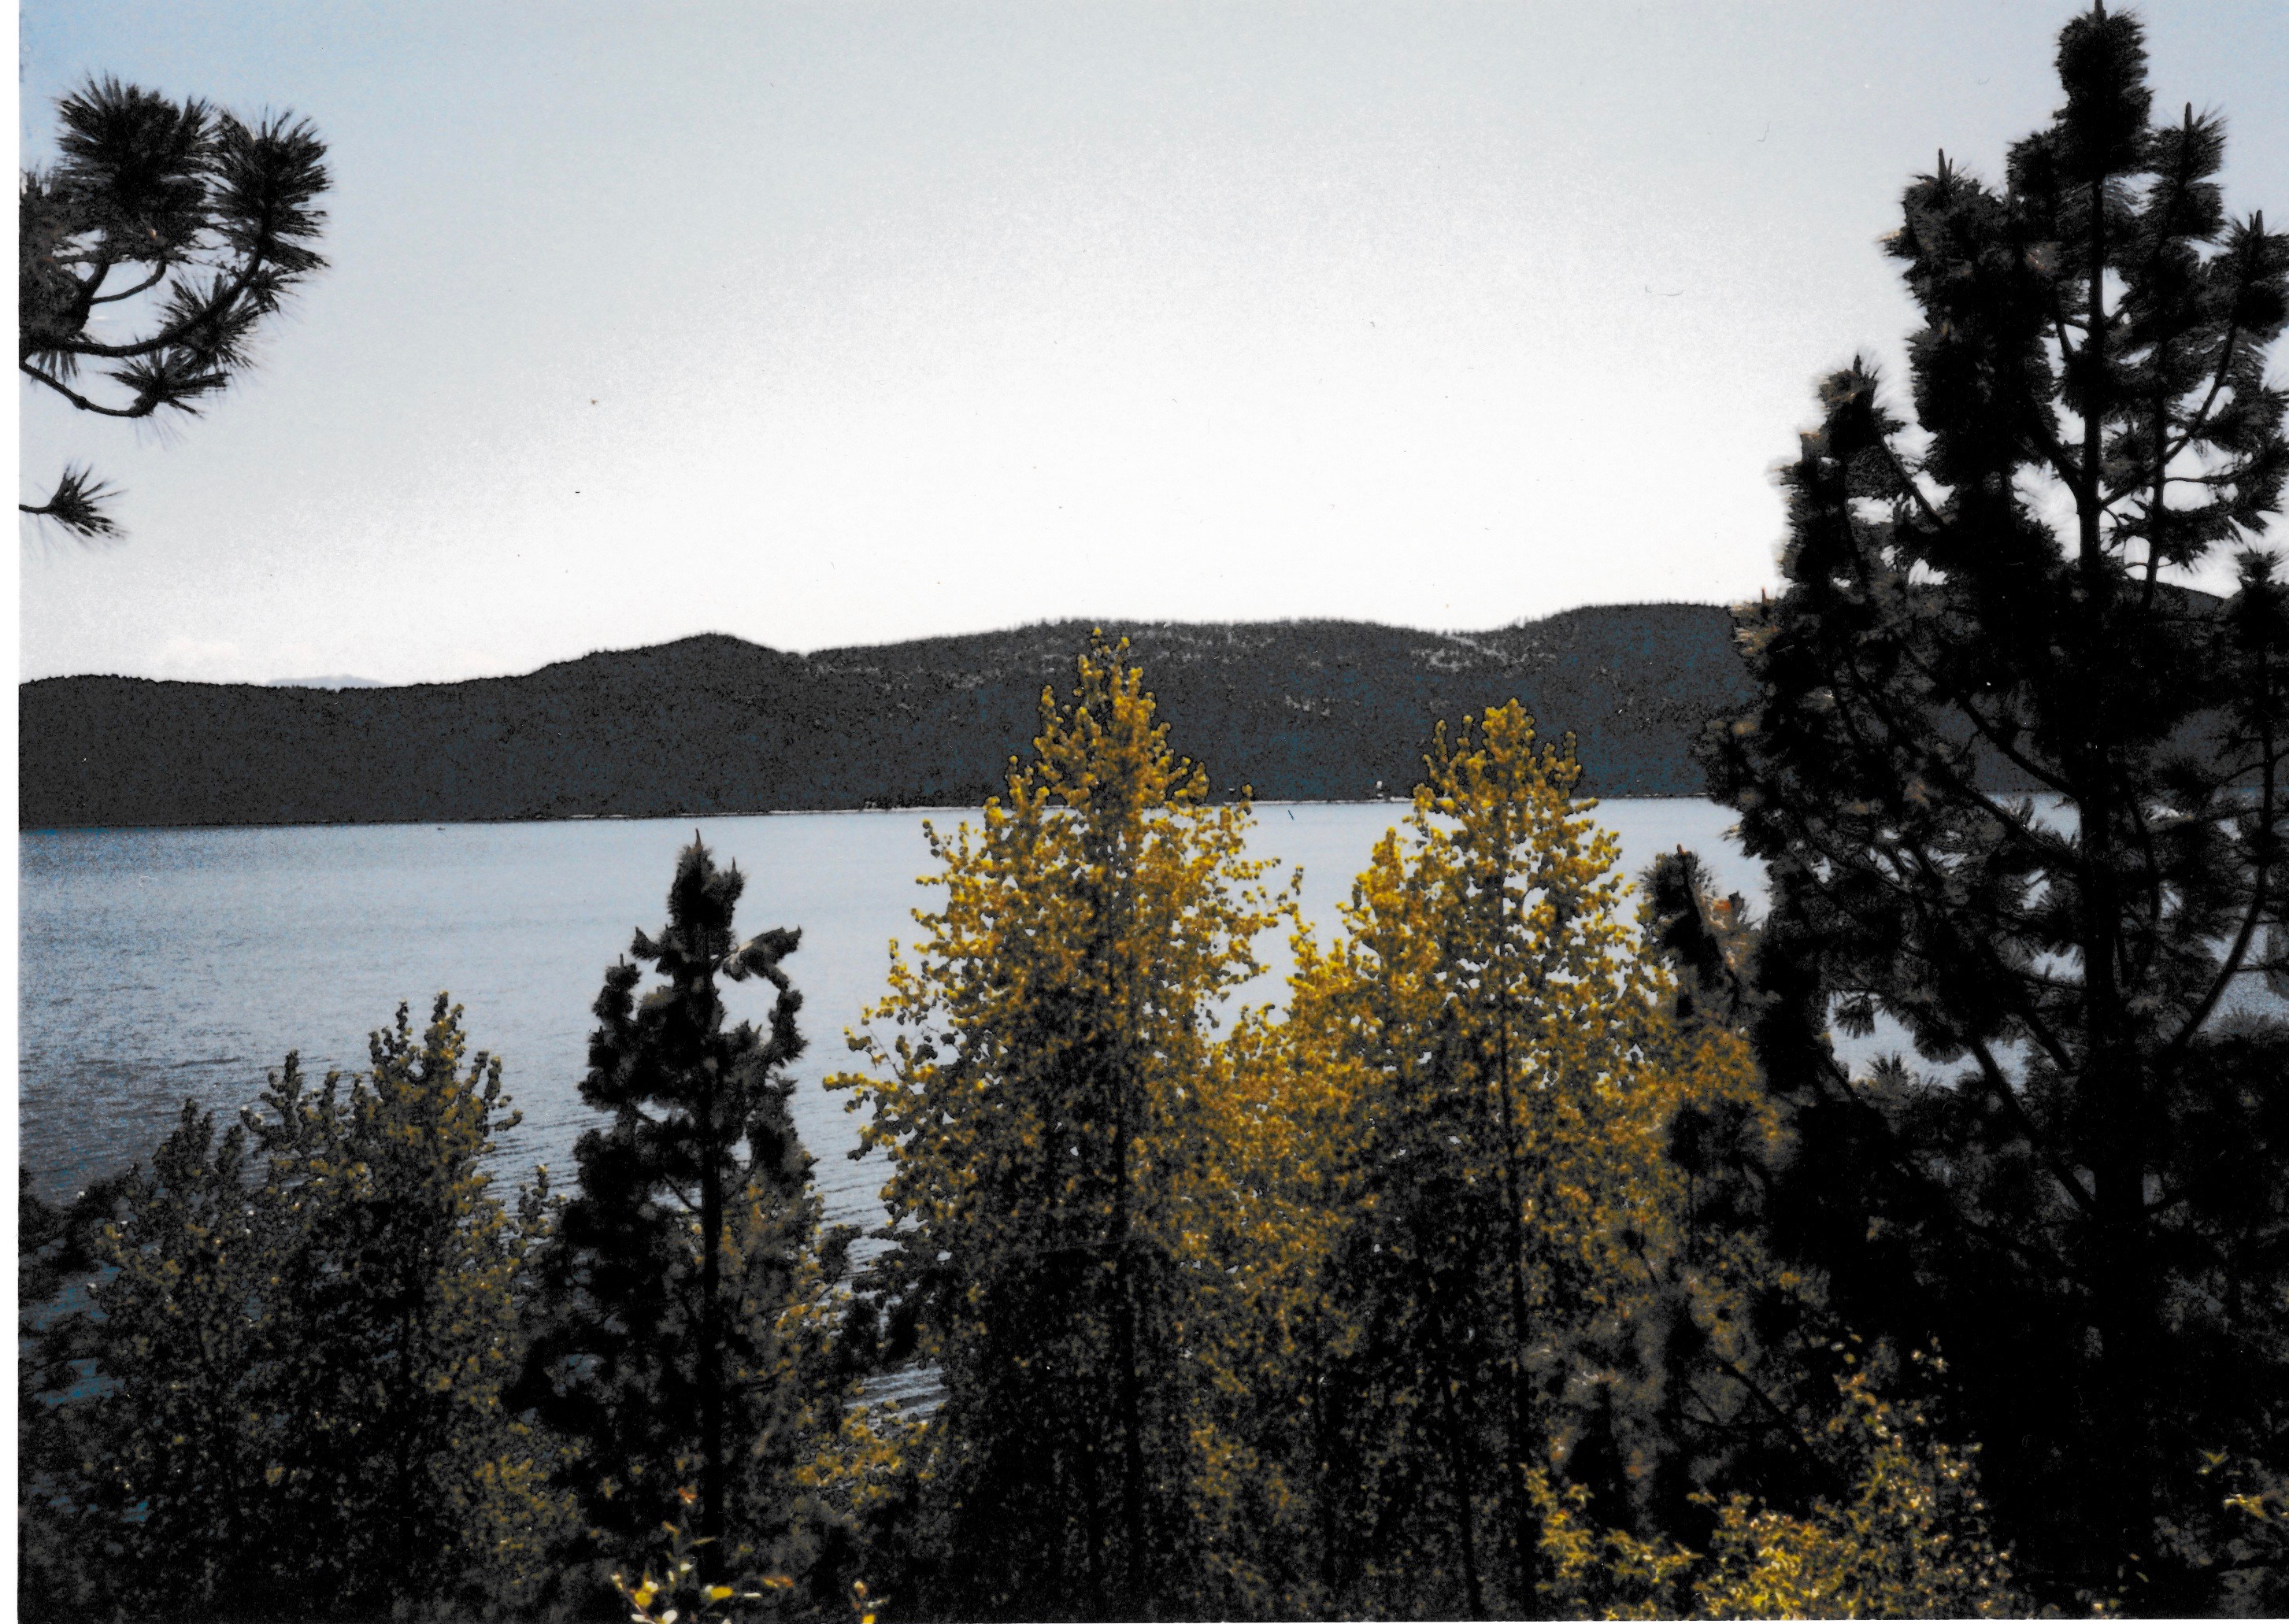 Lake Pend Oreille in August